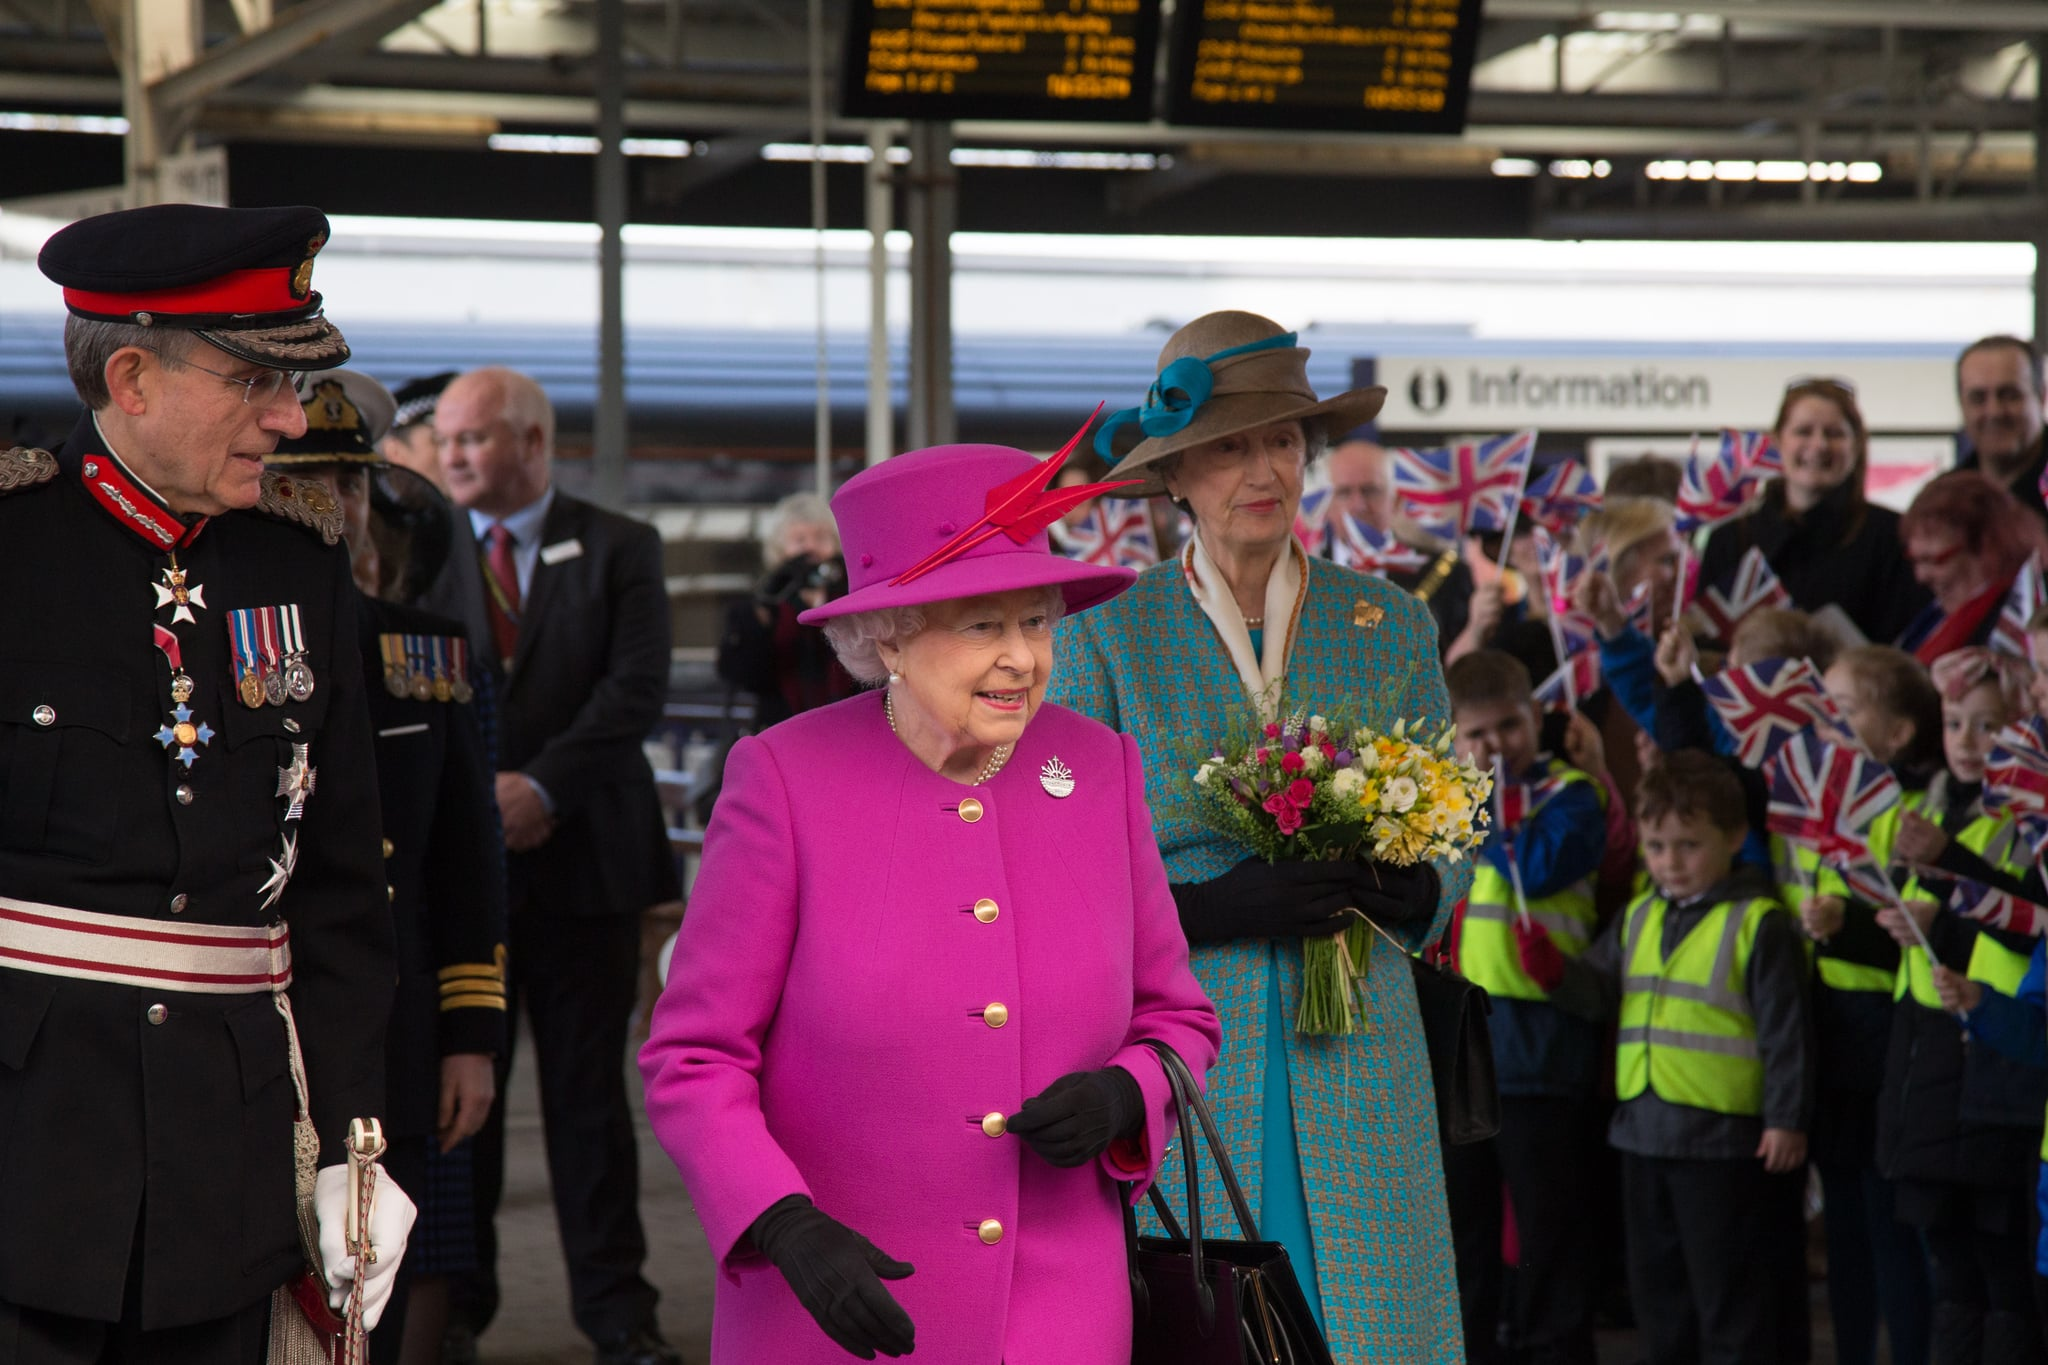 PLYMOUTH, ENGLAND - MARCH 20:  Queen Elizabeth II walks from the platform as she arrives at Plymouth Railway Station as she visits the city on March 20, 2015 in Plymouth, England.  (Photo by Matt Cardy - WPA Pool/Getty Images)